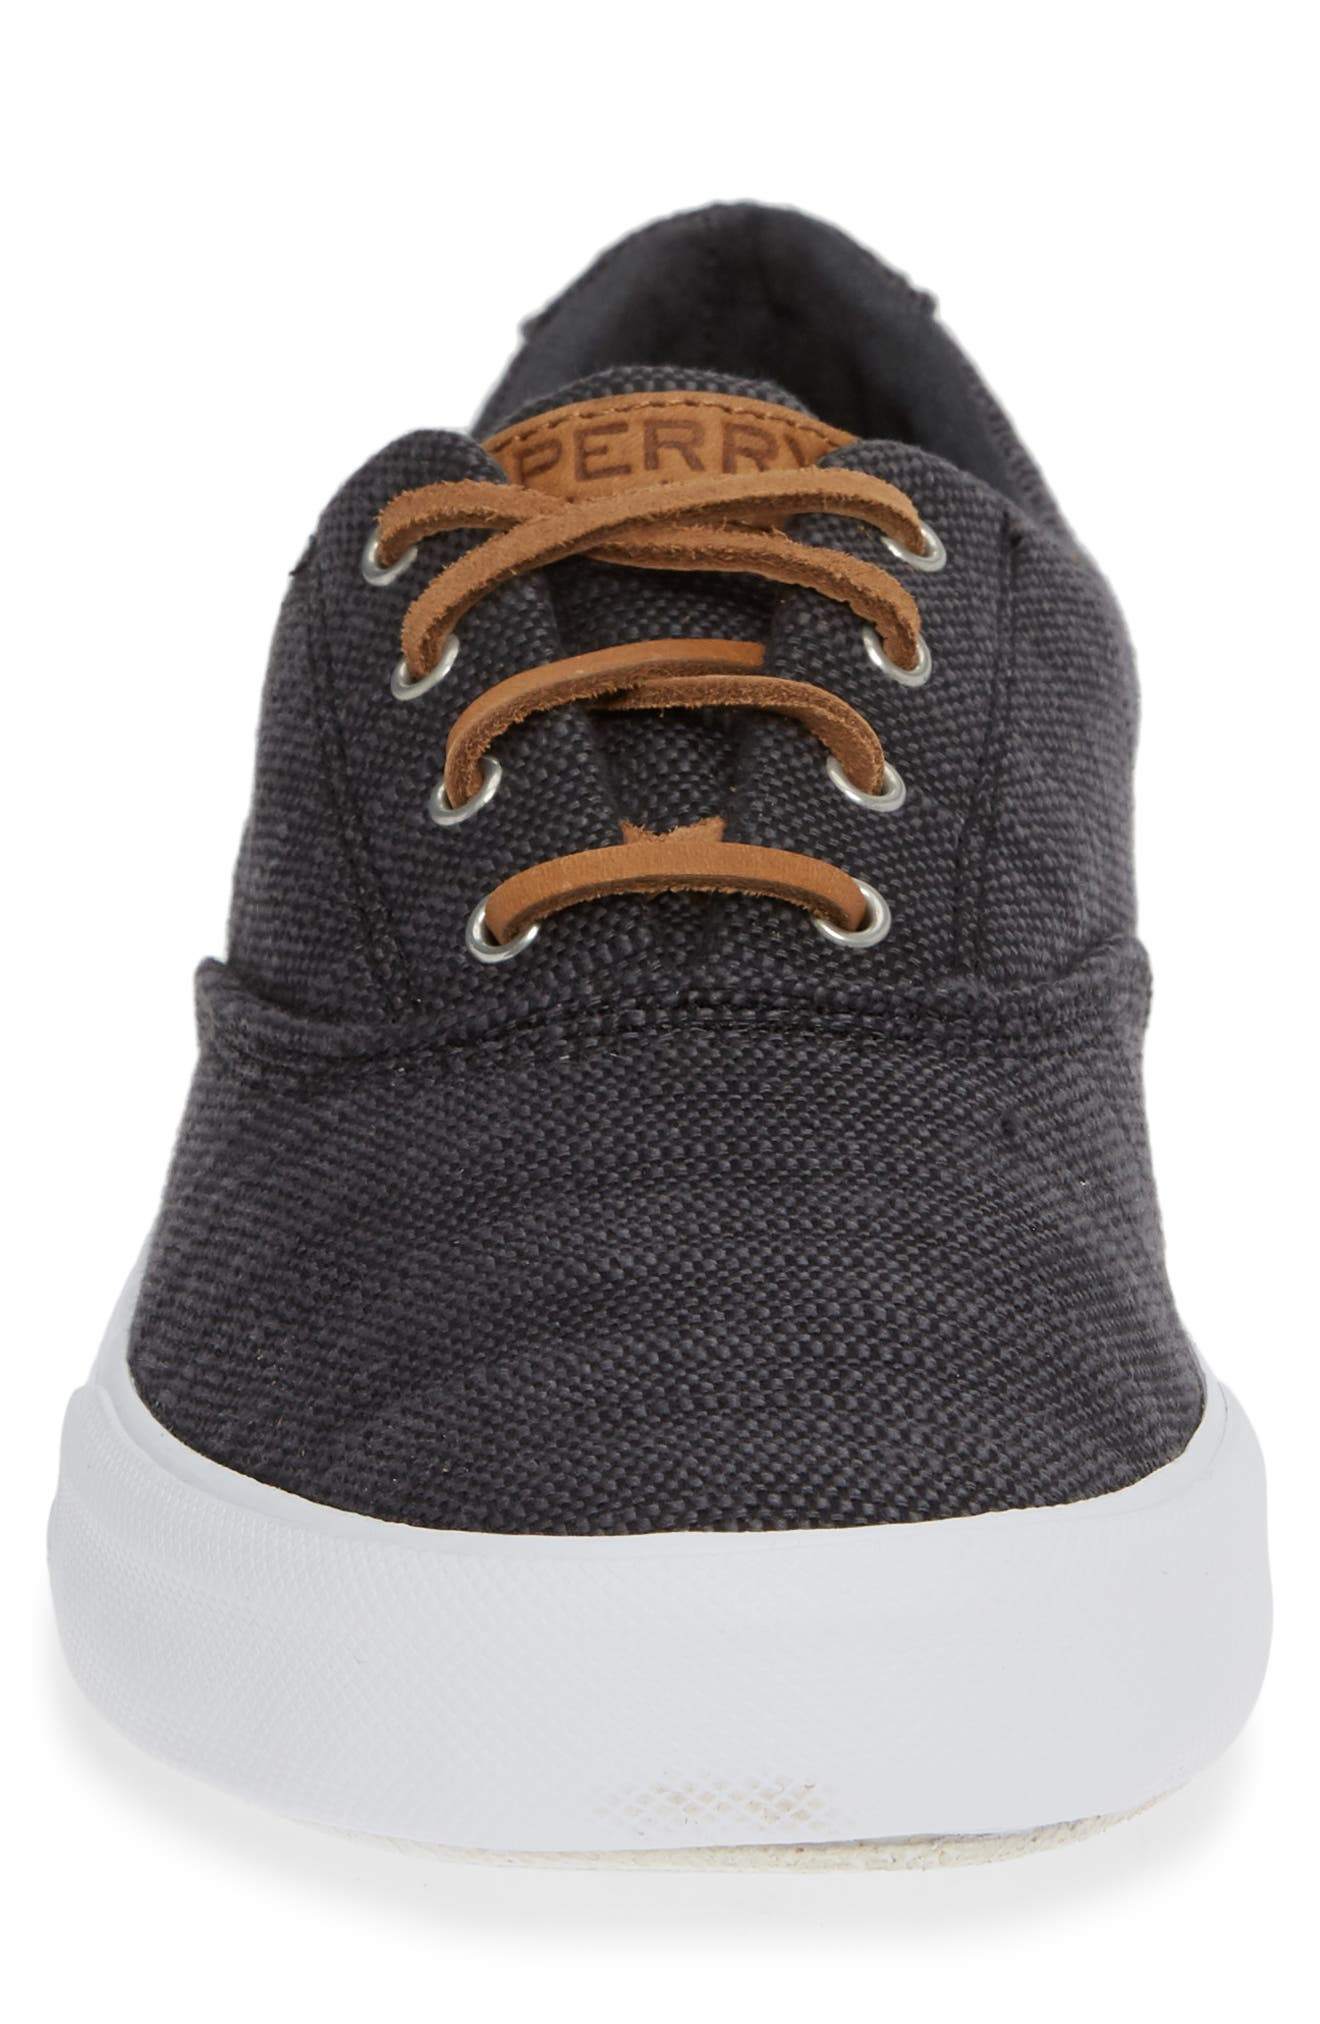 SPERRY, Striper II Baja CVO Sneaker, Alternate thumbnail 4, color, BLACK